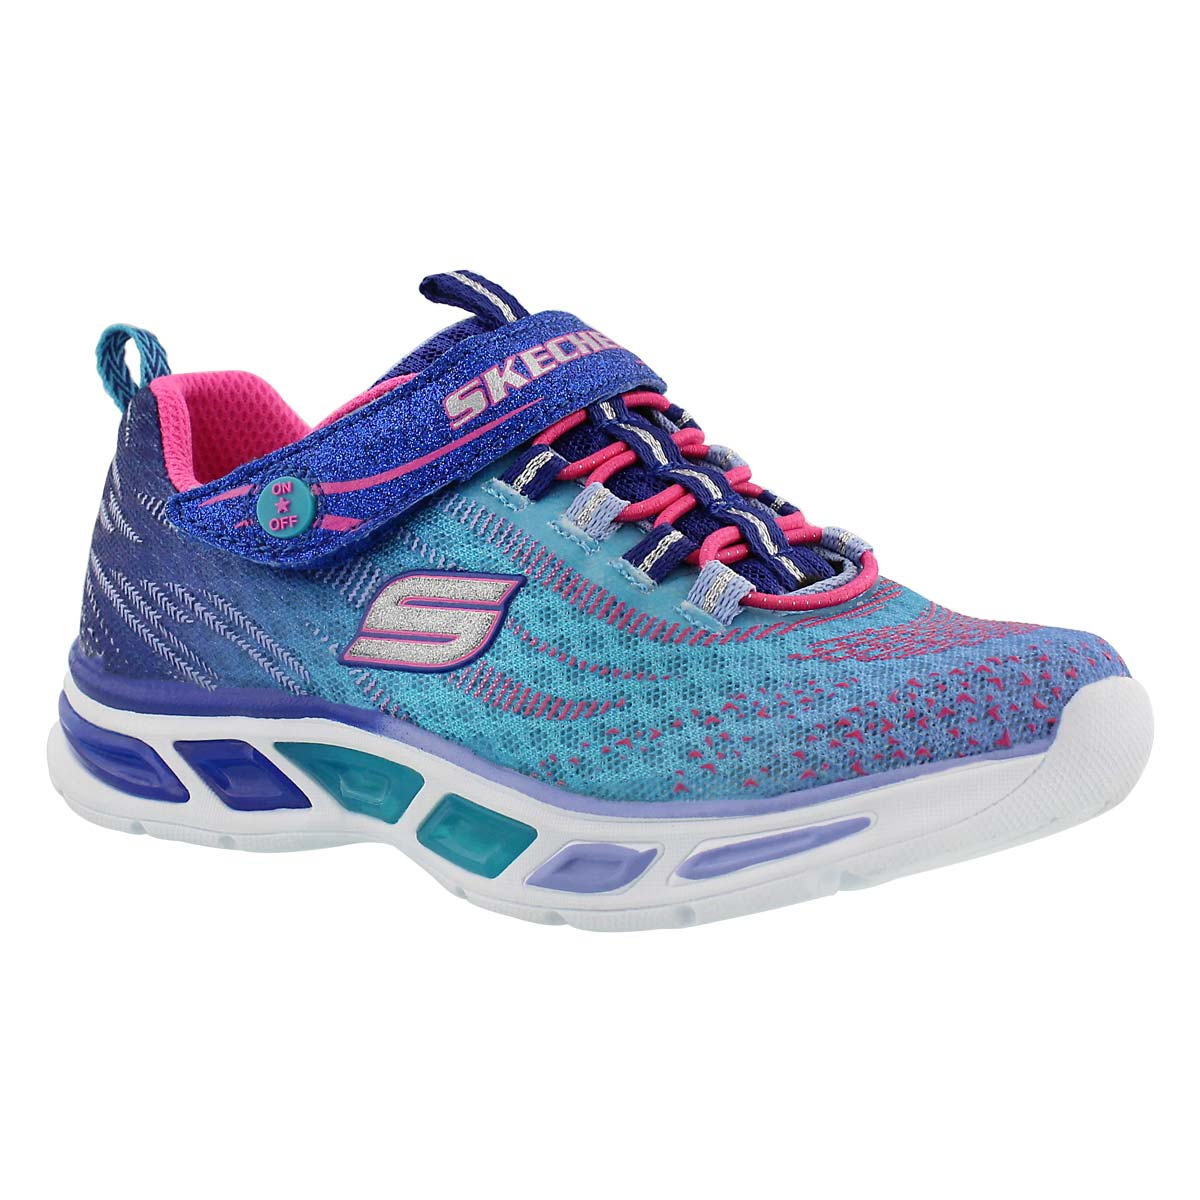 Girls' LITEBEAMS blue ombre lightup sneakers